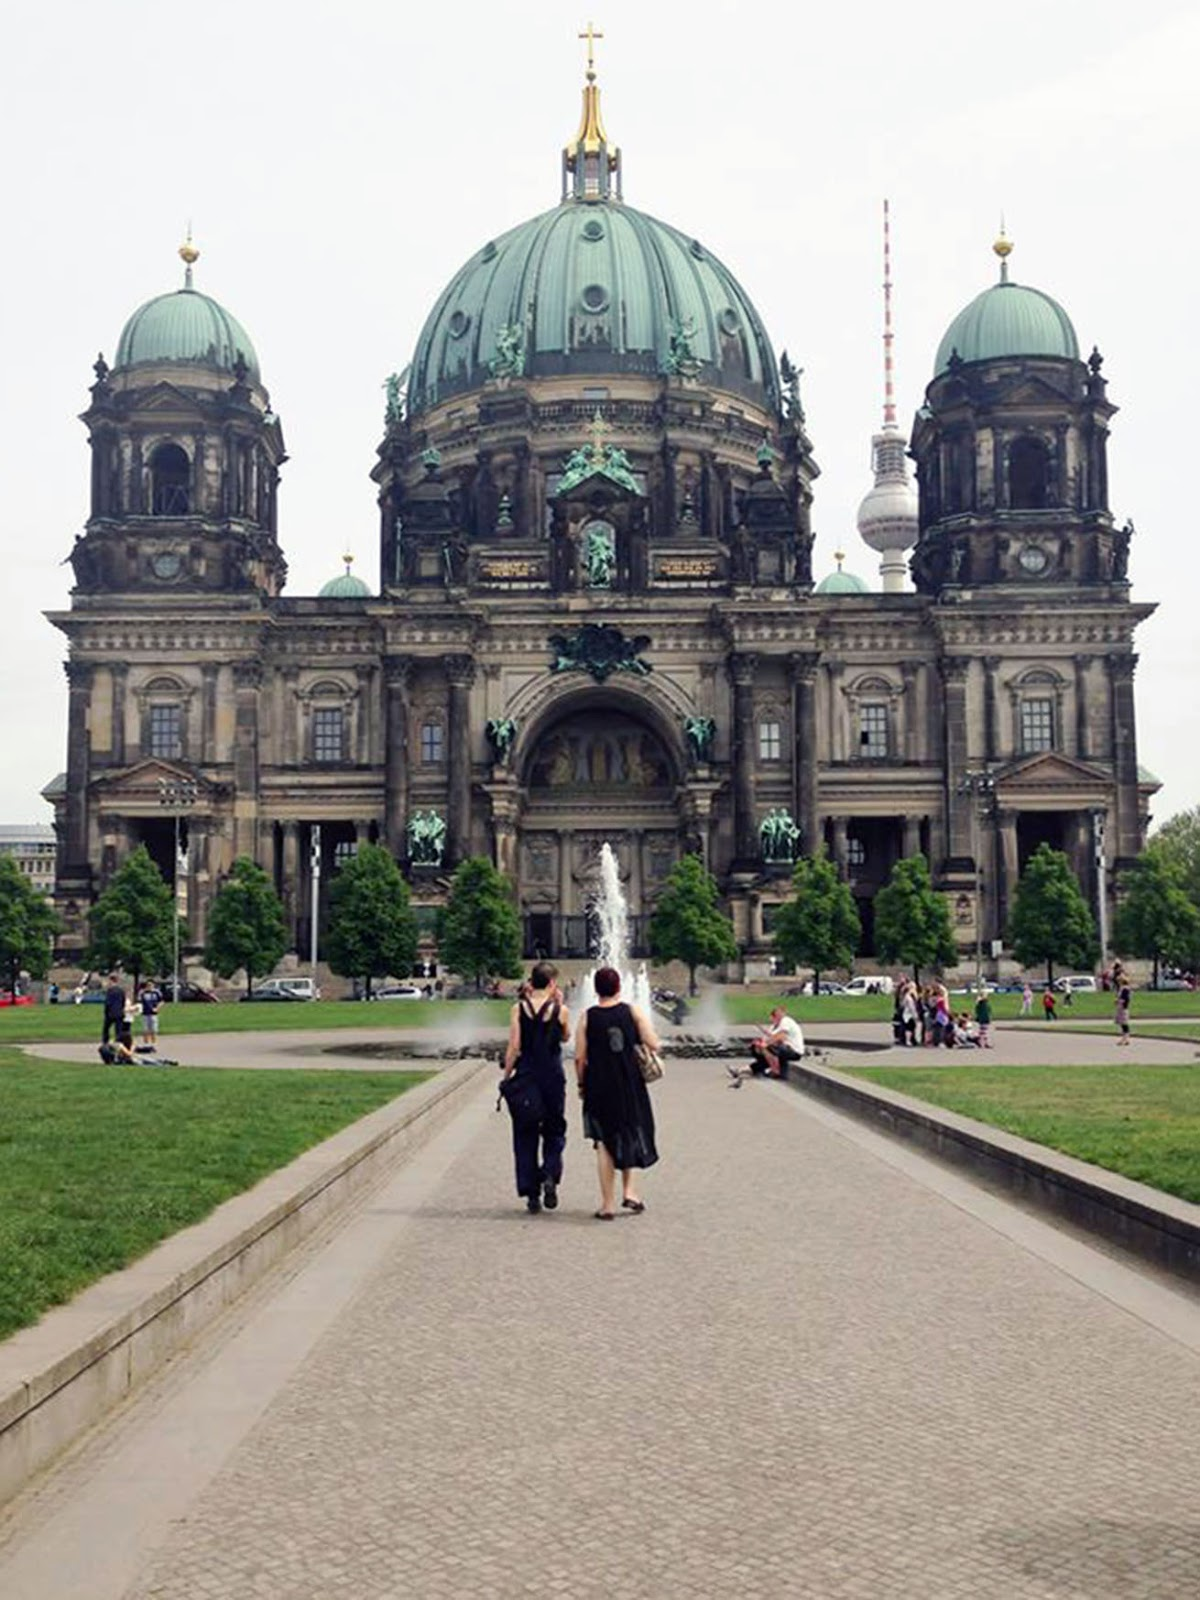 Berliner dom, Berlin cathedral